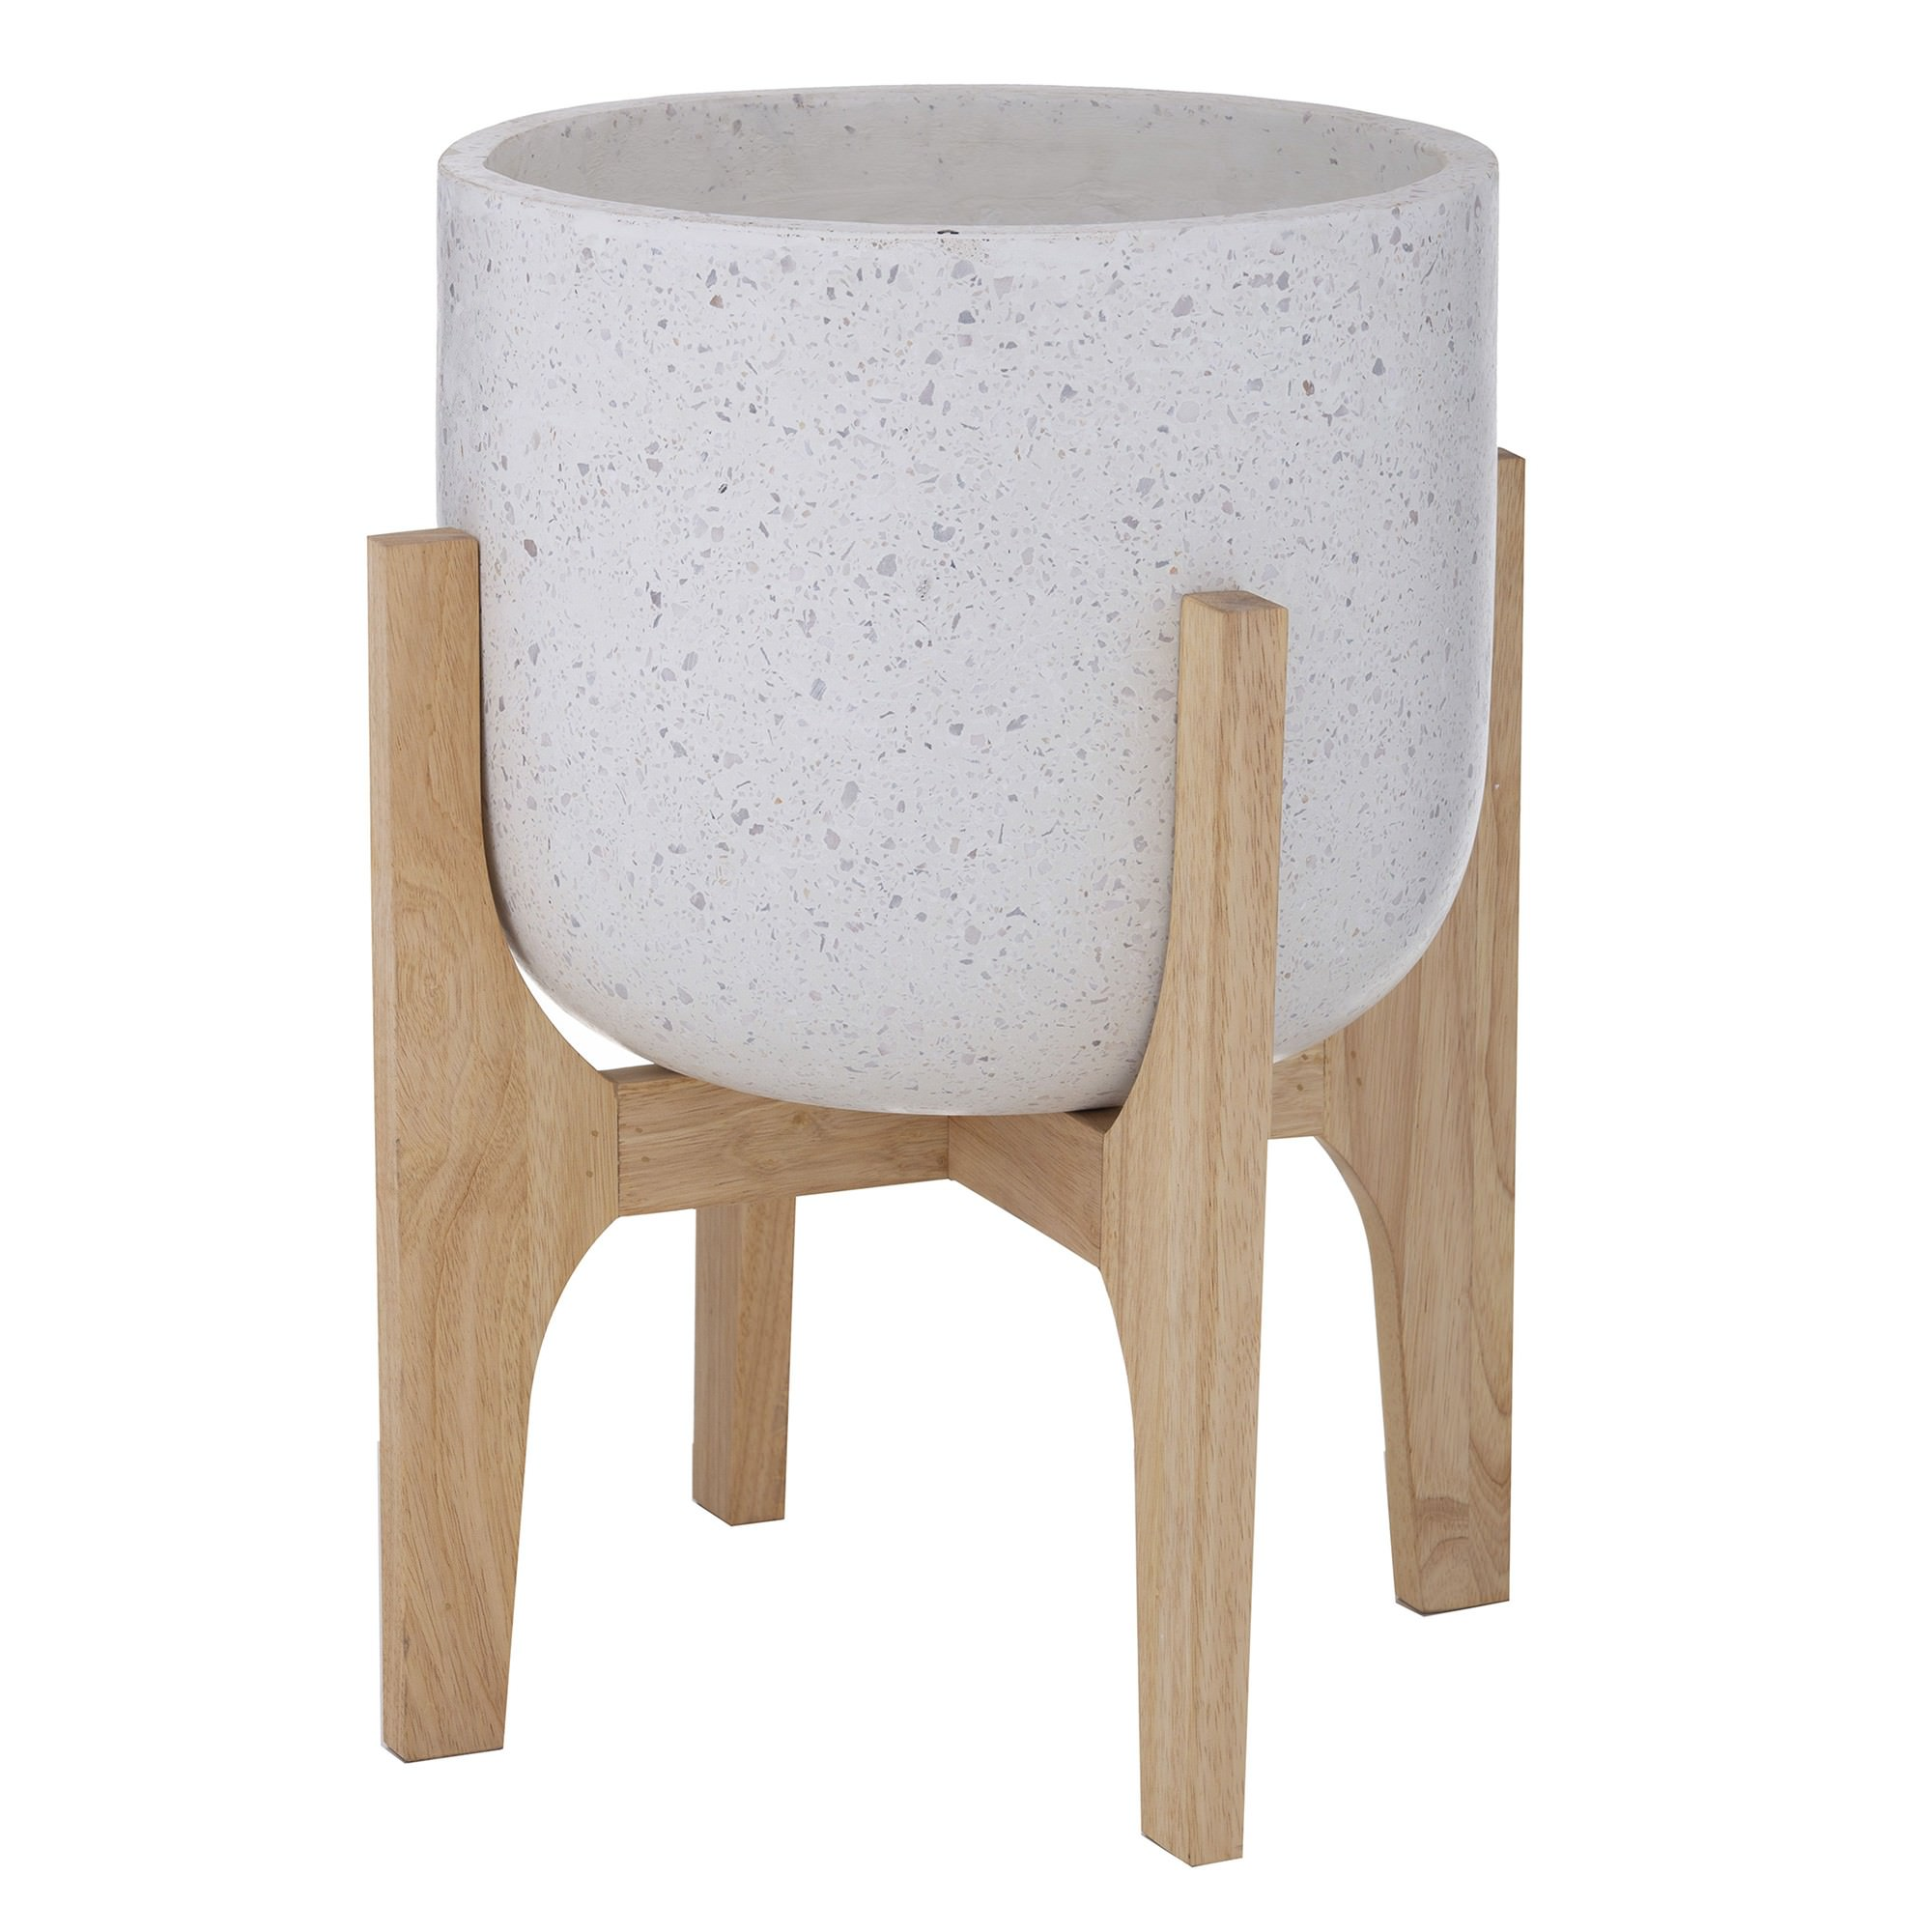 Kiana Terrazzo Planter on Timber Stand, Large, White